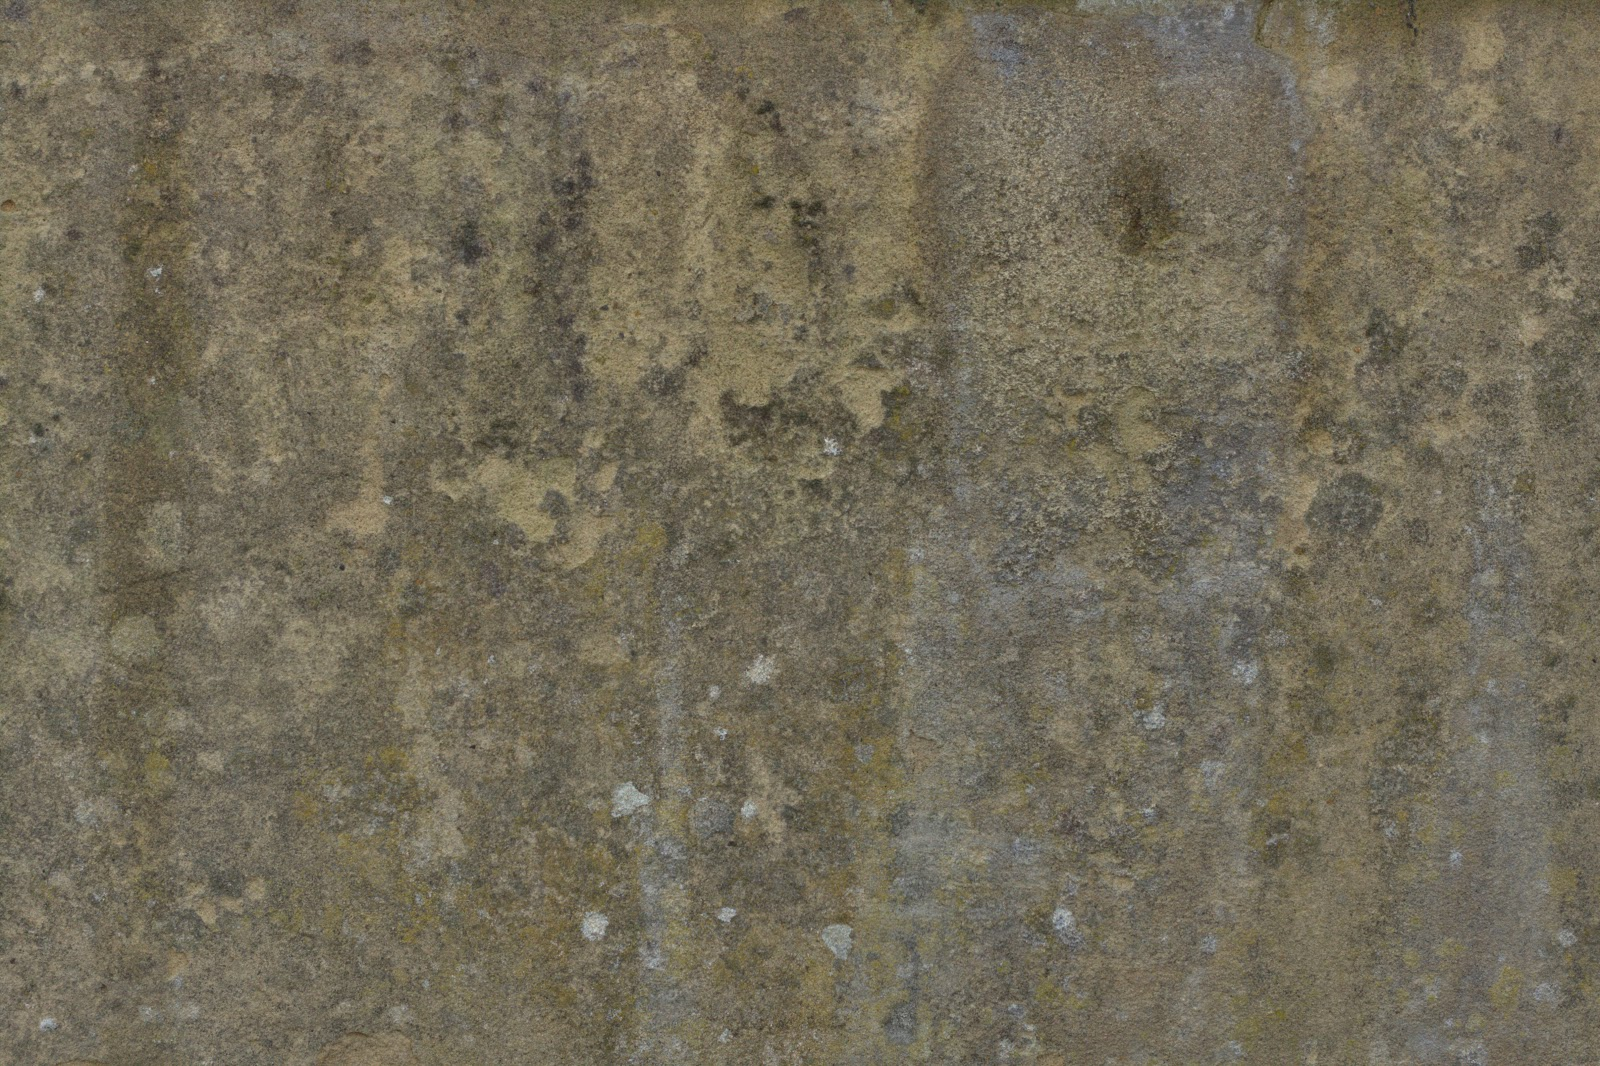 Stucco wall grunge feb_2015 texture 4770x3178